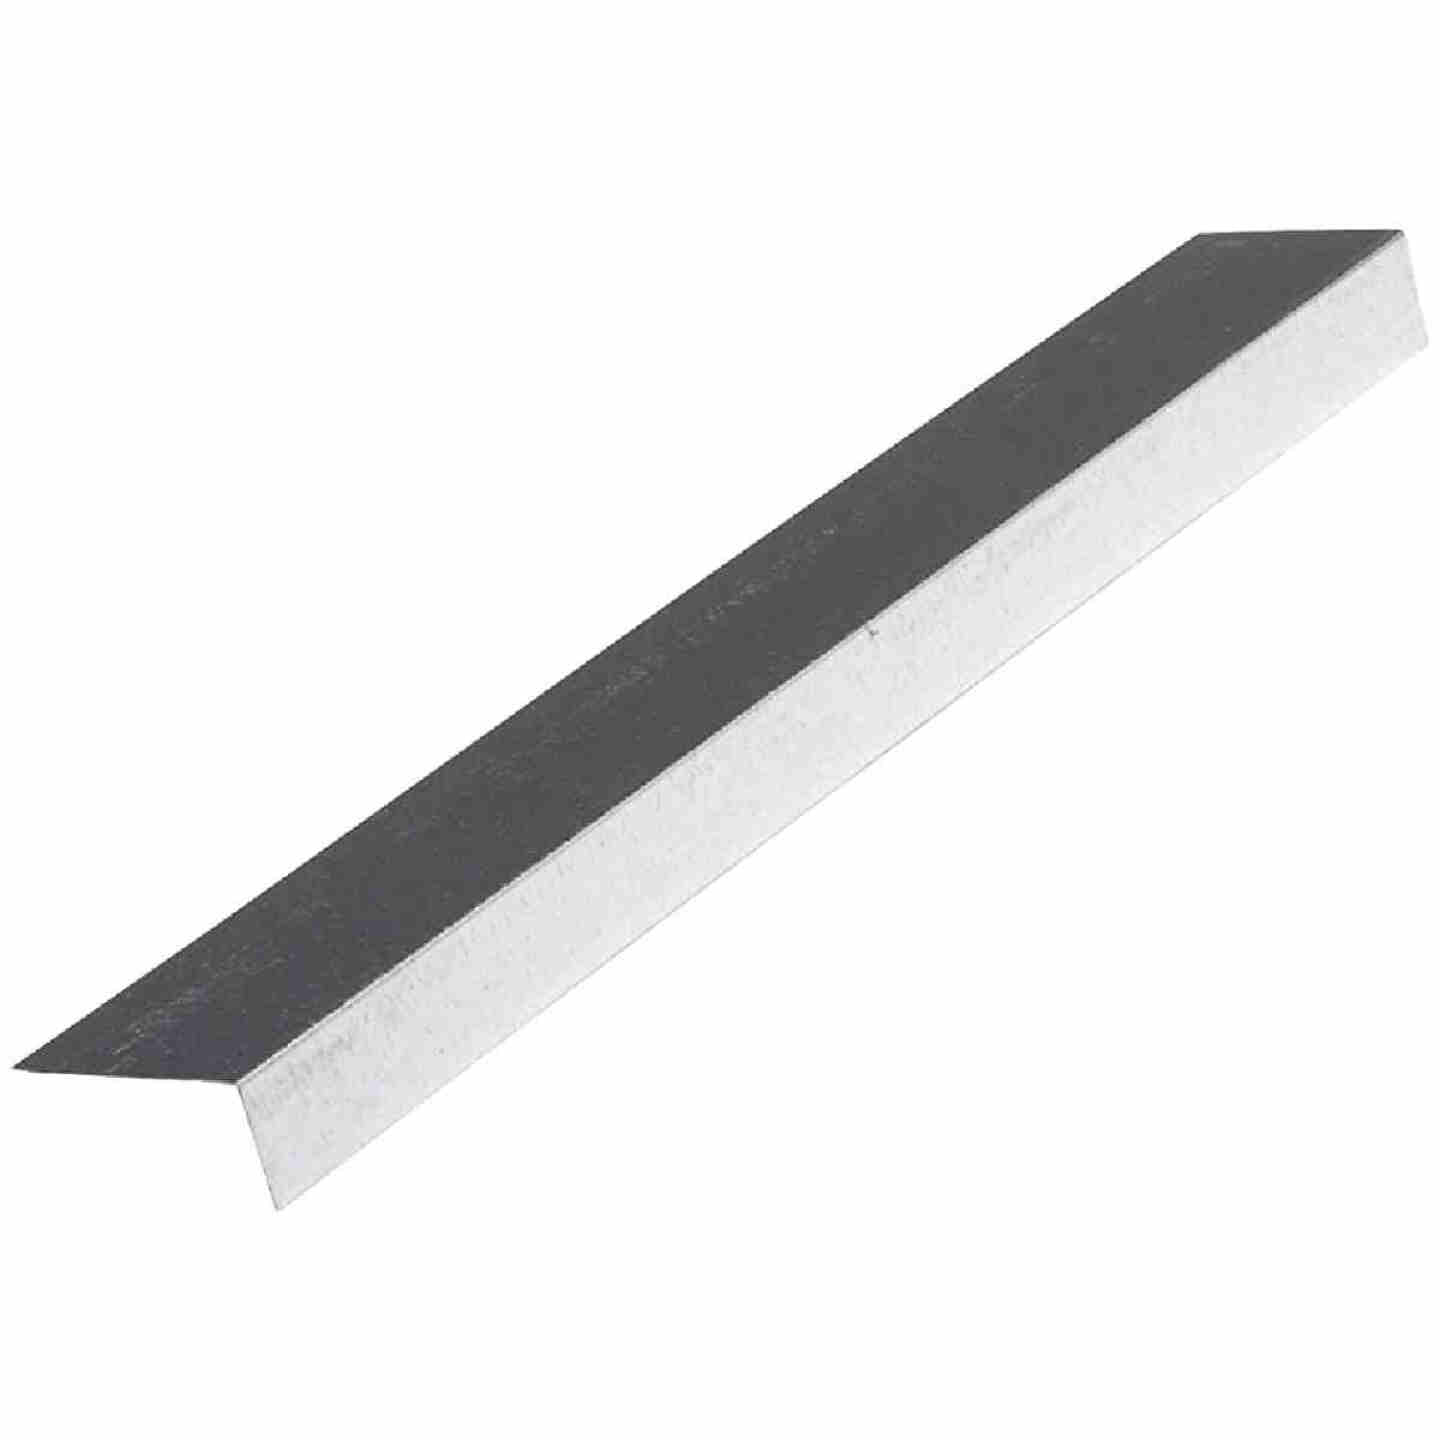 NorWesco A 1 In. X 1-1/2 In. Galvanized Steel Roof & Drip Edge Flashing Image 1